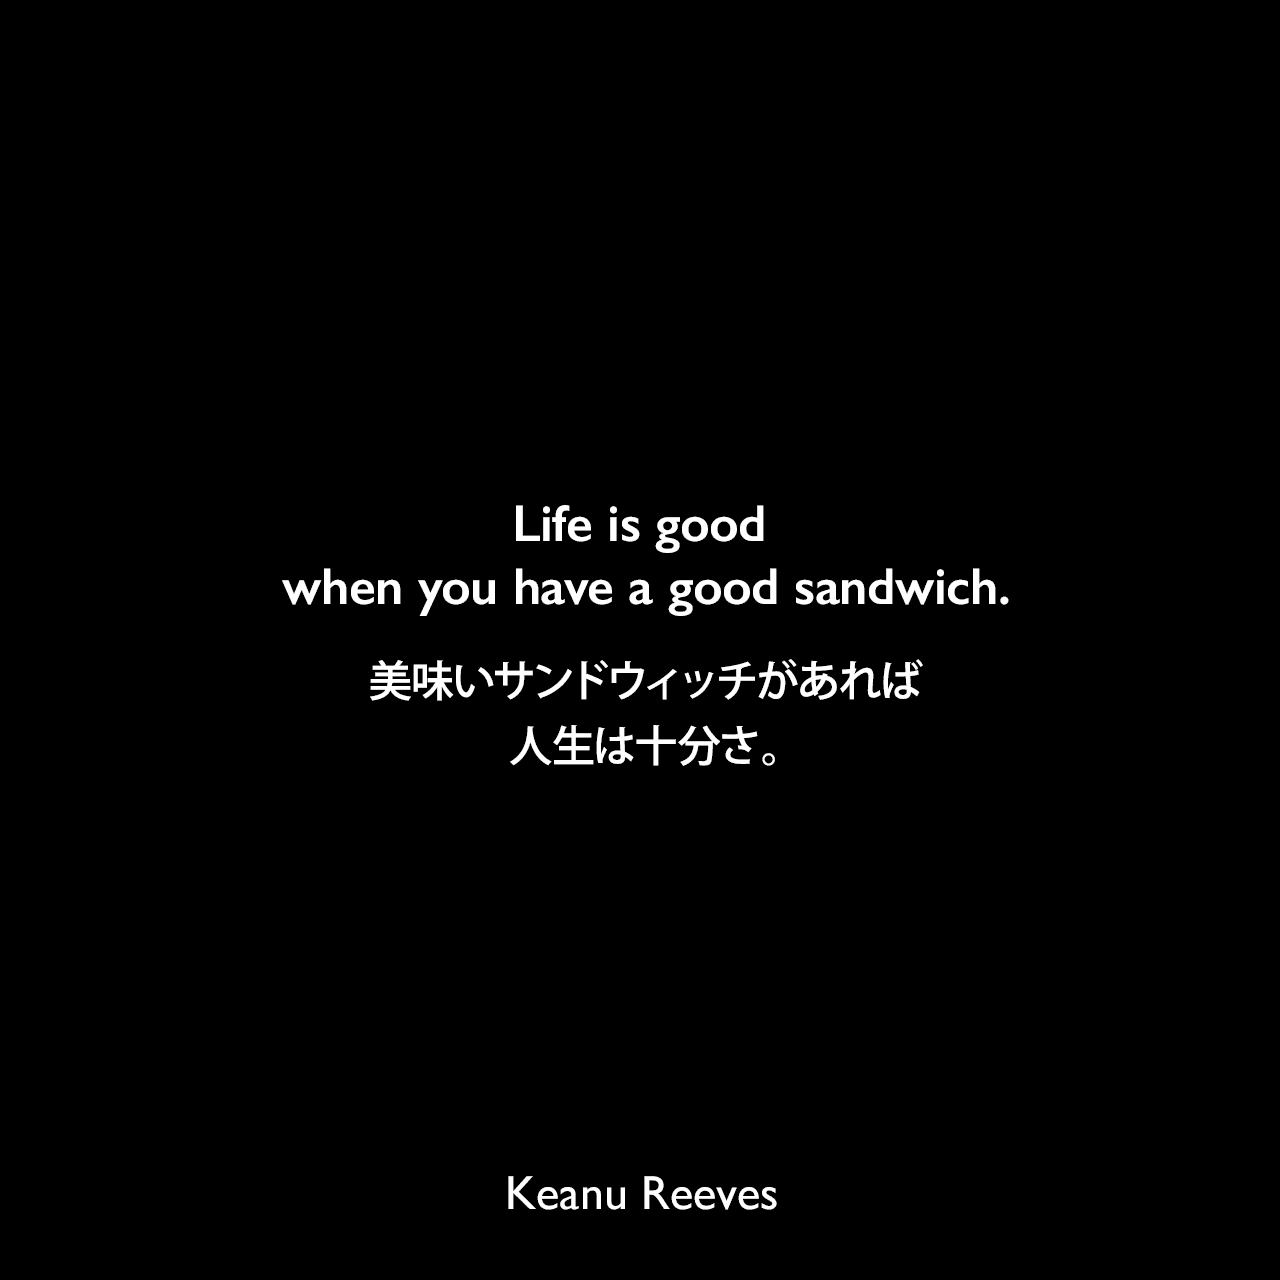 Life is good when you have a good sandwich.美味いサンドウィッチがあれば人生は十分さ。Keanu Reeves